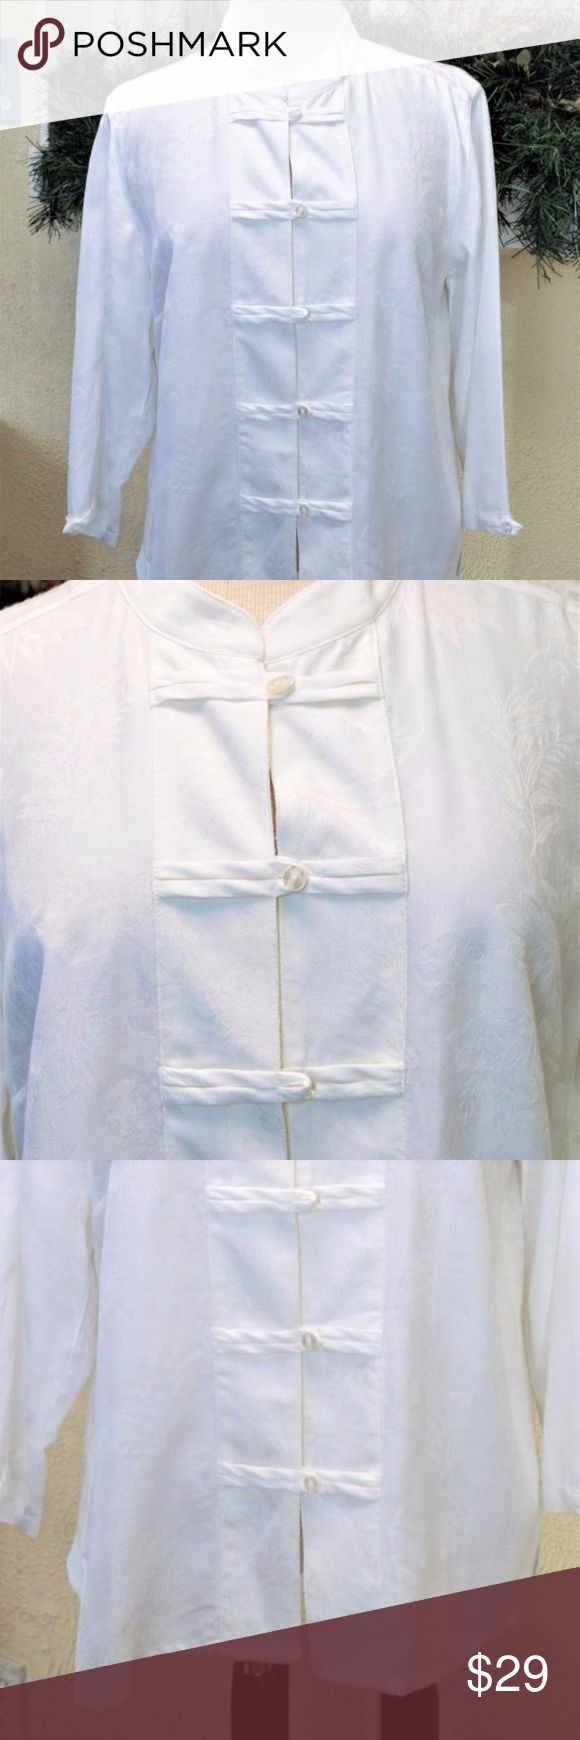 """NEW Mandarin Collar Shirt L White Asian Style Christopher & Banks Floral Jacquard Mandarin Collar Blouse Mandarin collar Fabric strips create accents and button loops 3/4 sleeves 3rd button is unbuttoned Square hem with side slits Floral jacquard fabric Rayon Polyester blend  Size: Large   Colors: White Style: Button Front Blouse Fabric Content: 73% Rayon 27% Polyester ( No Spandex)   Measurements: Bust-41"""" Waist-42"""" Hips-42"""" Sleeve(midneck/cuff)-24.5"""" Underarm/cuff-12"""" Shoulder/hem-24""""…"""